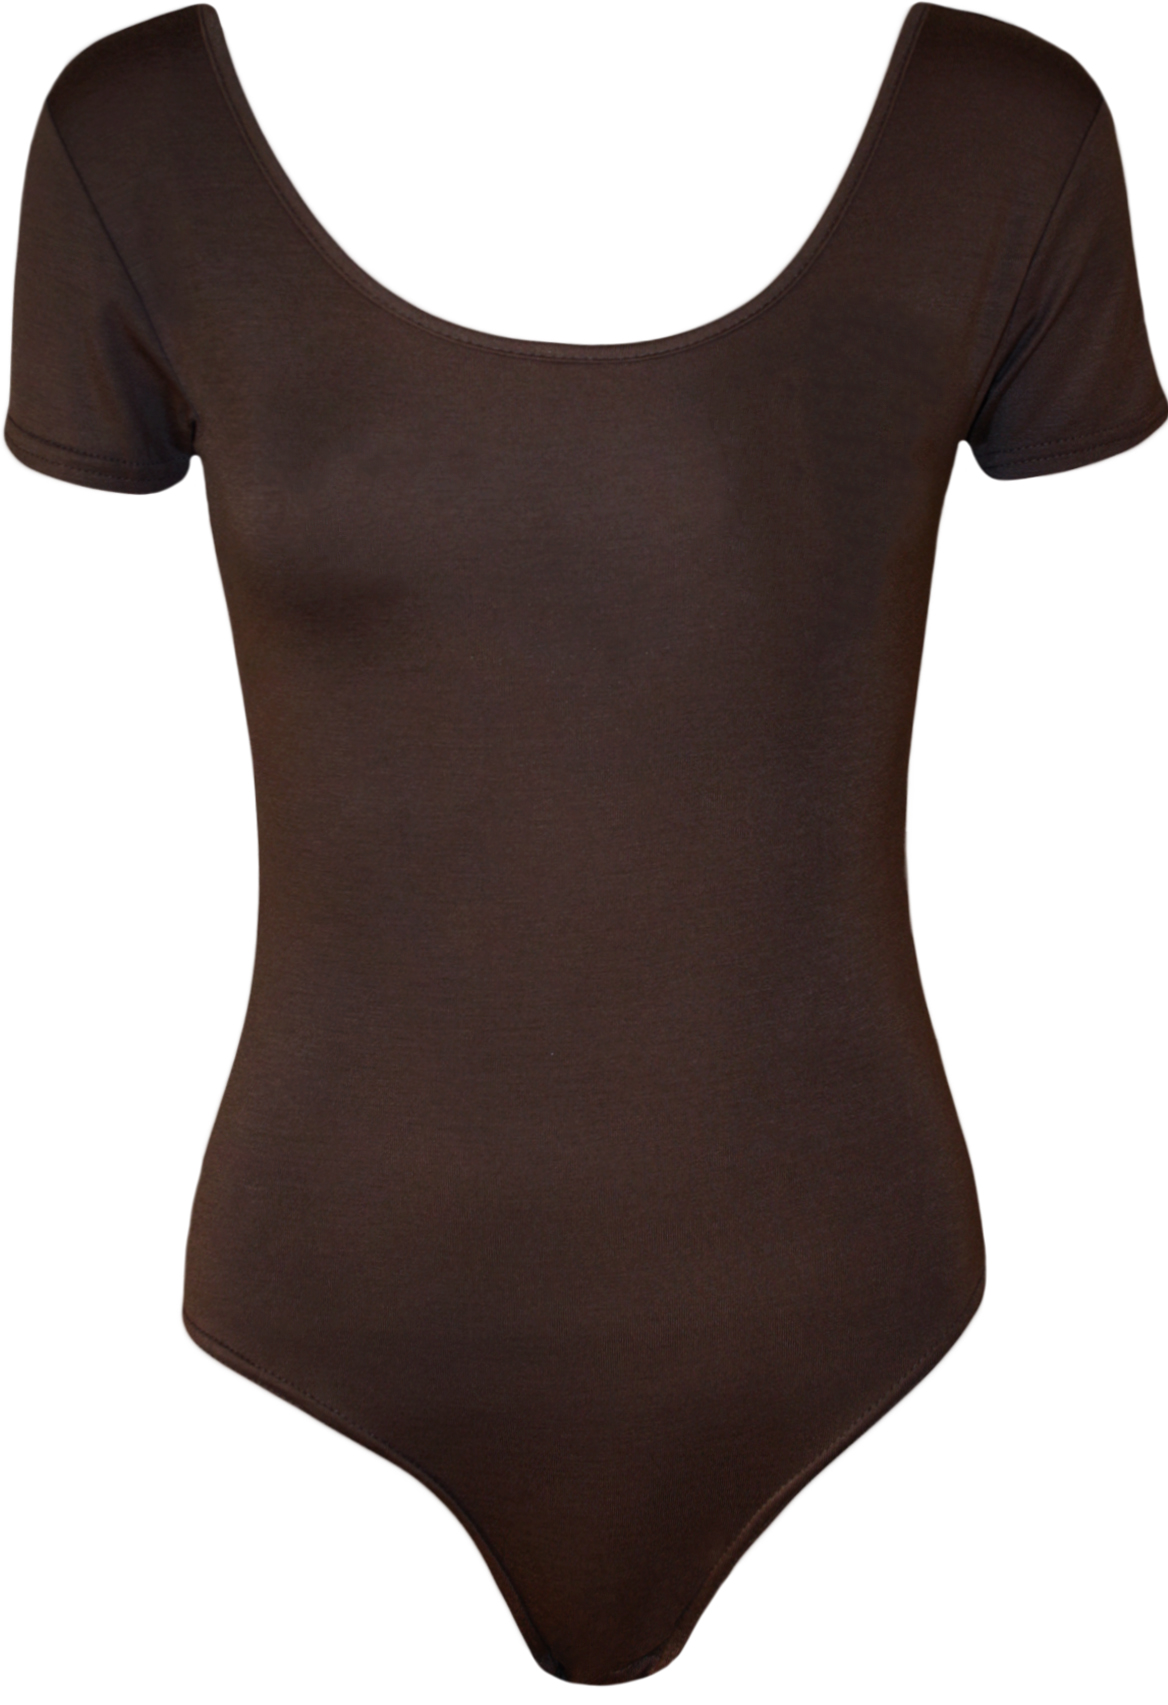 New-Plus-Womens-Plain-Short-Sleeve-Stretch-Ladies-Bodysuit-Leotard-Top-16-26